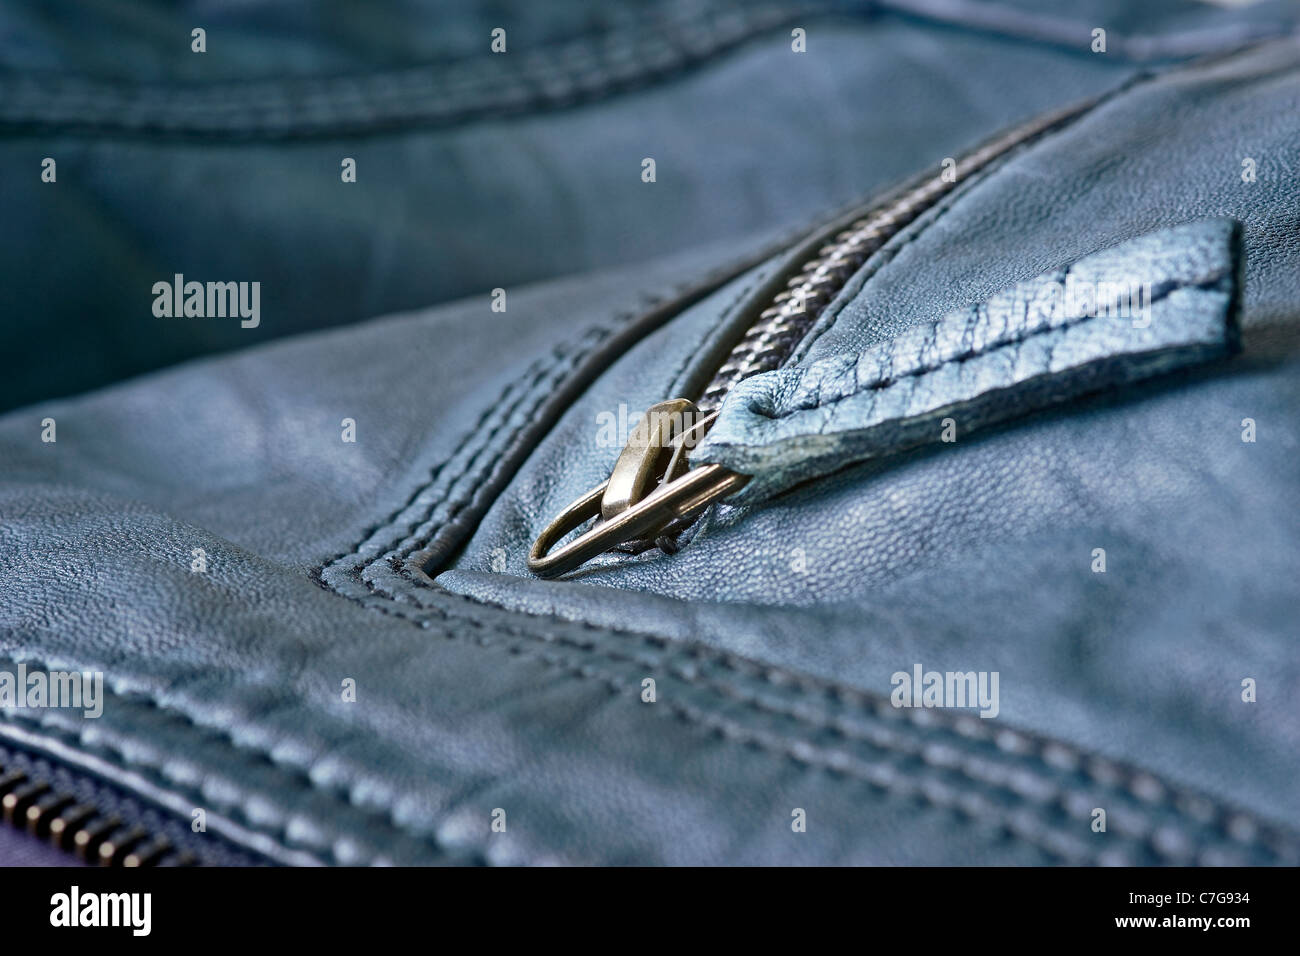 A blue leather jacket with zips. - Stock Image